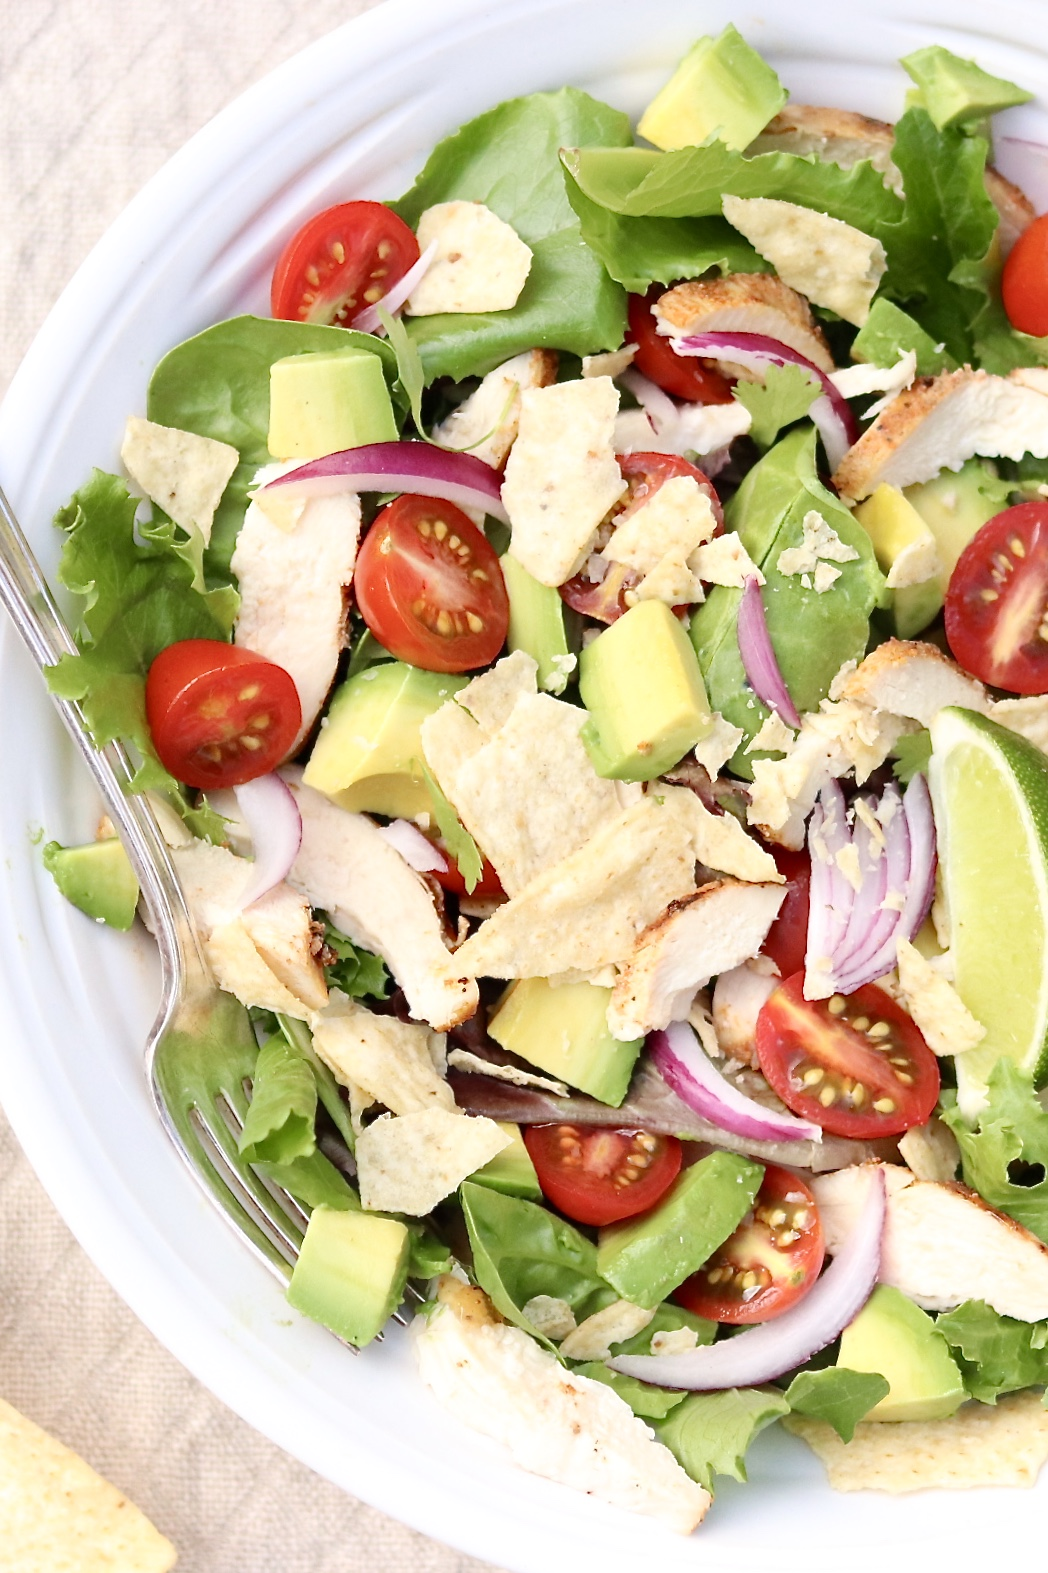 Sweetgreen's Guacamole Greens Salad (aka Guac Greens)-It's suddenly easy (and inexpensive) to devour this healthy, über popular restaurant salad on repeat thanks to this copycat recipe!